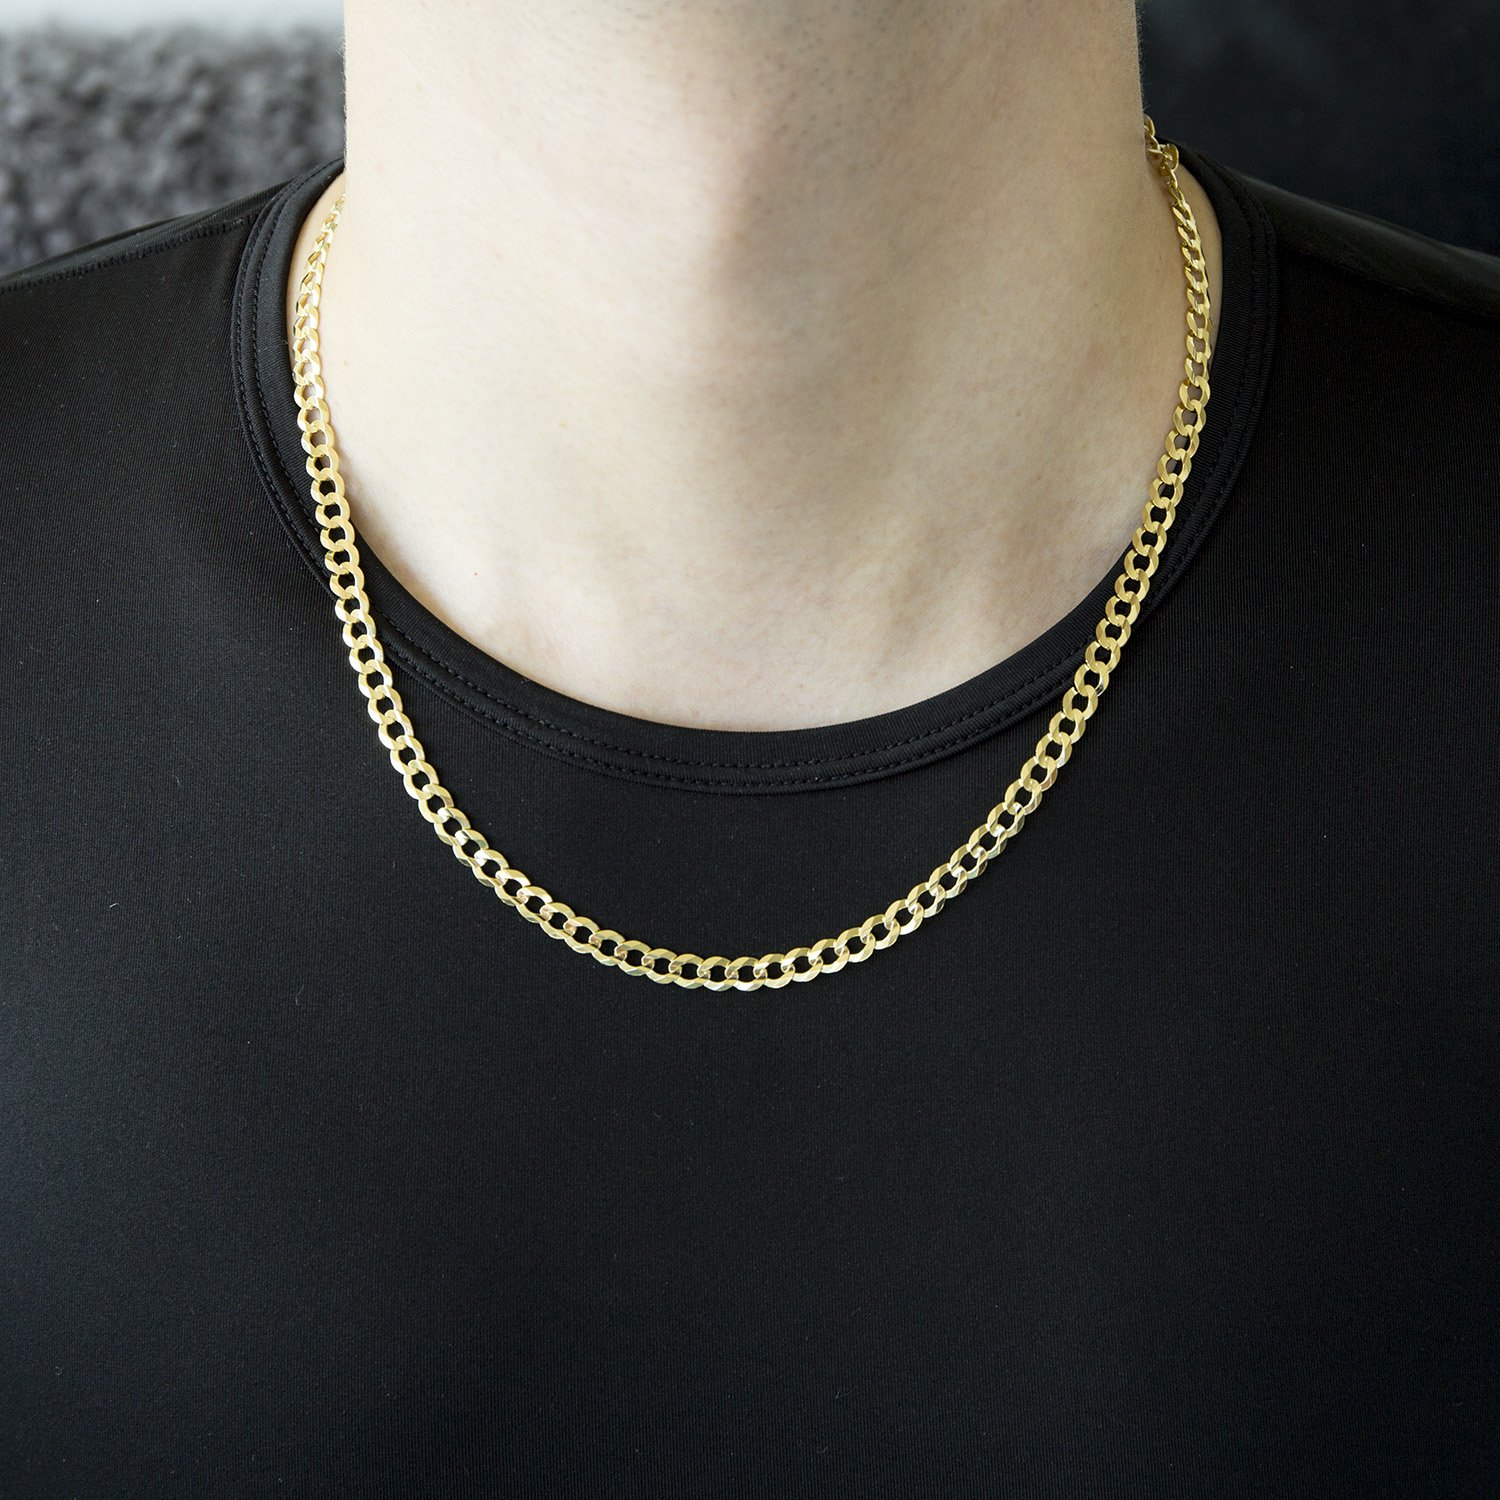 trendy from curb jewelry hip chain plated on cuban hop necklaces men item accessories in for link necklace franco gift gold color mens